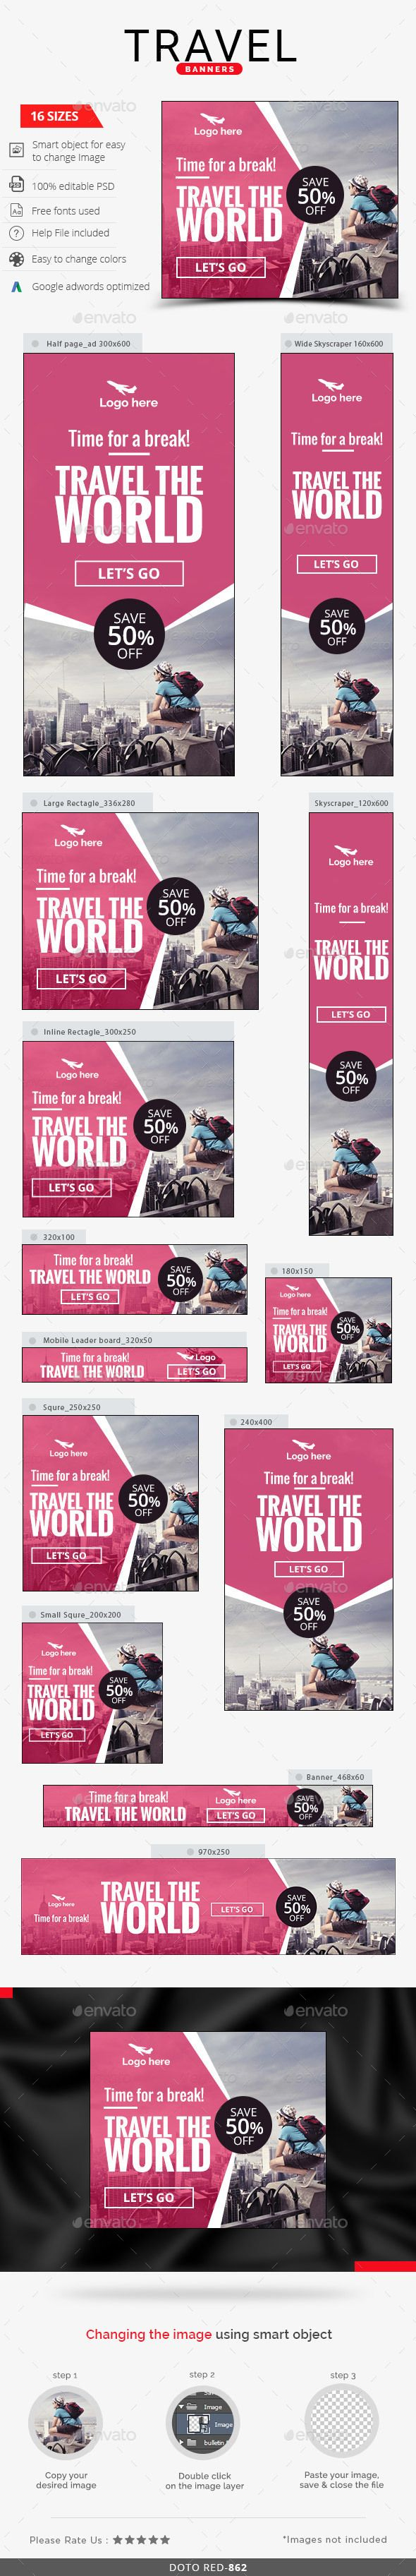 16 Sizes Travel Web Banners Template PSD #design #ads Download: http://graphicriver.net/item/travel-banners/13737176?ref=ksioks